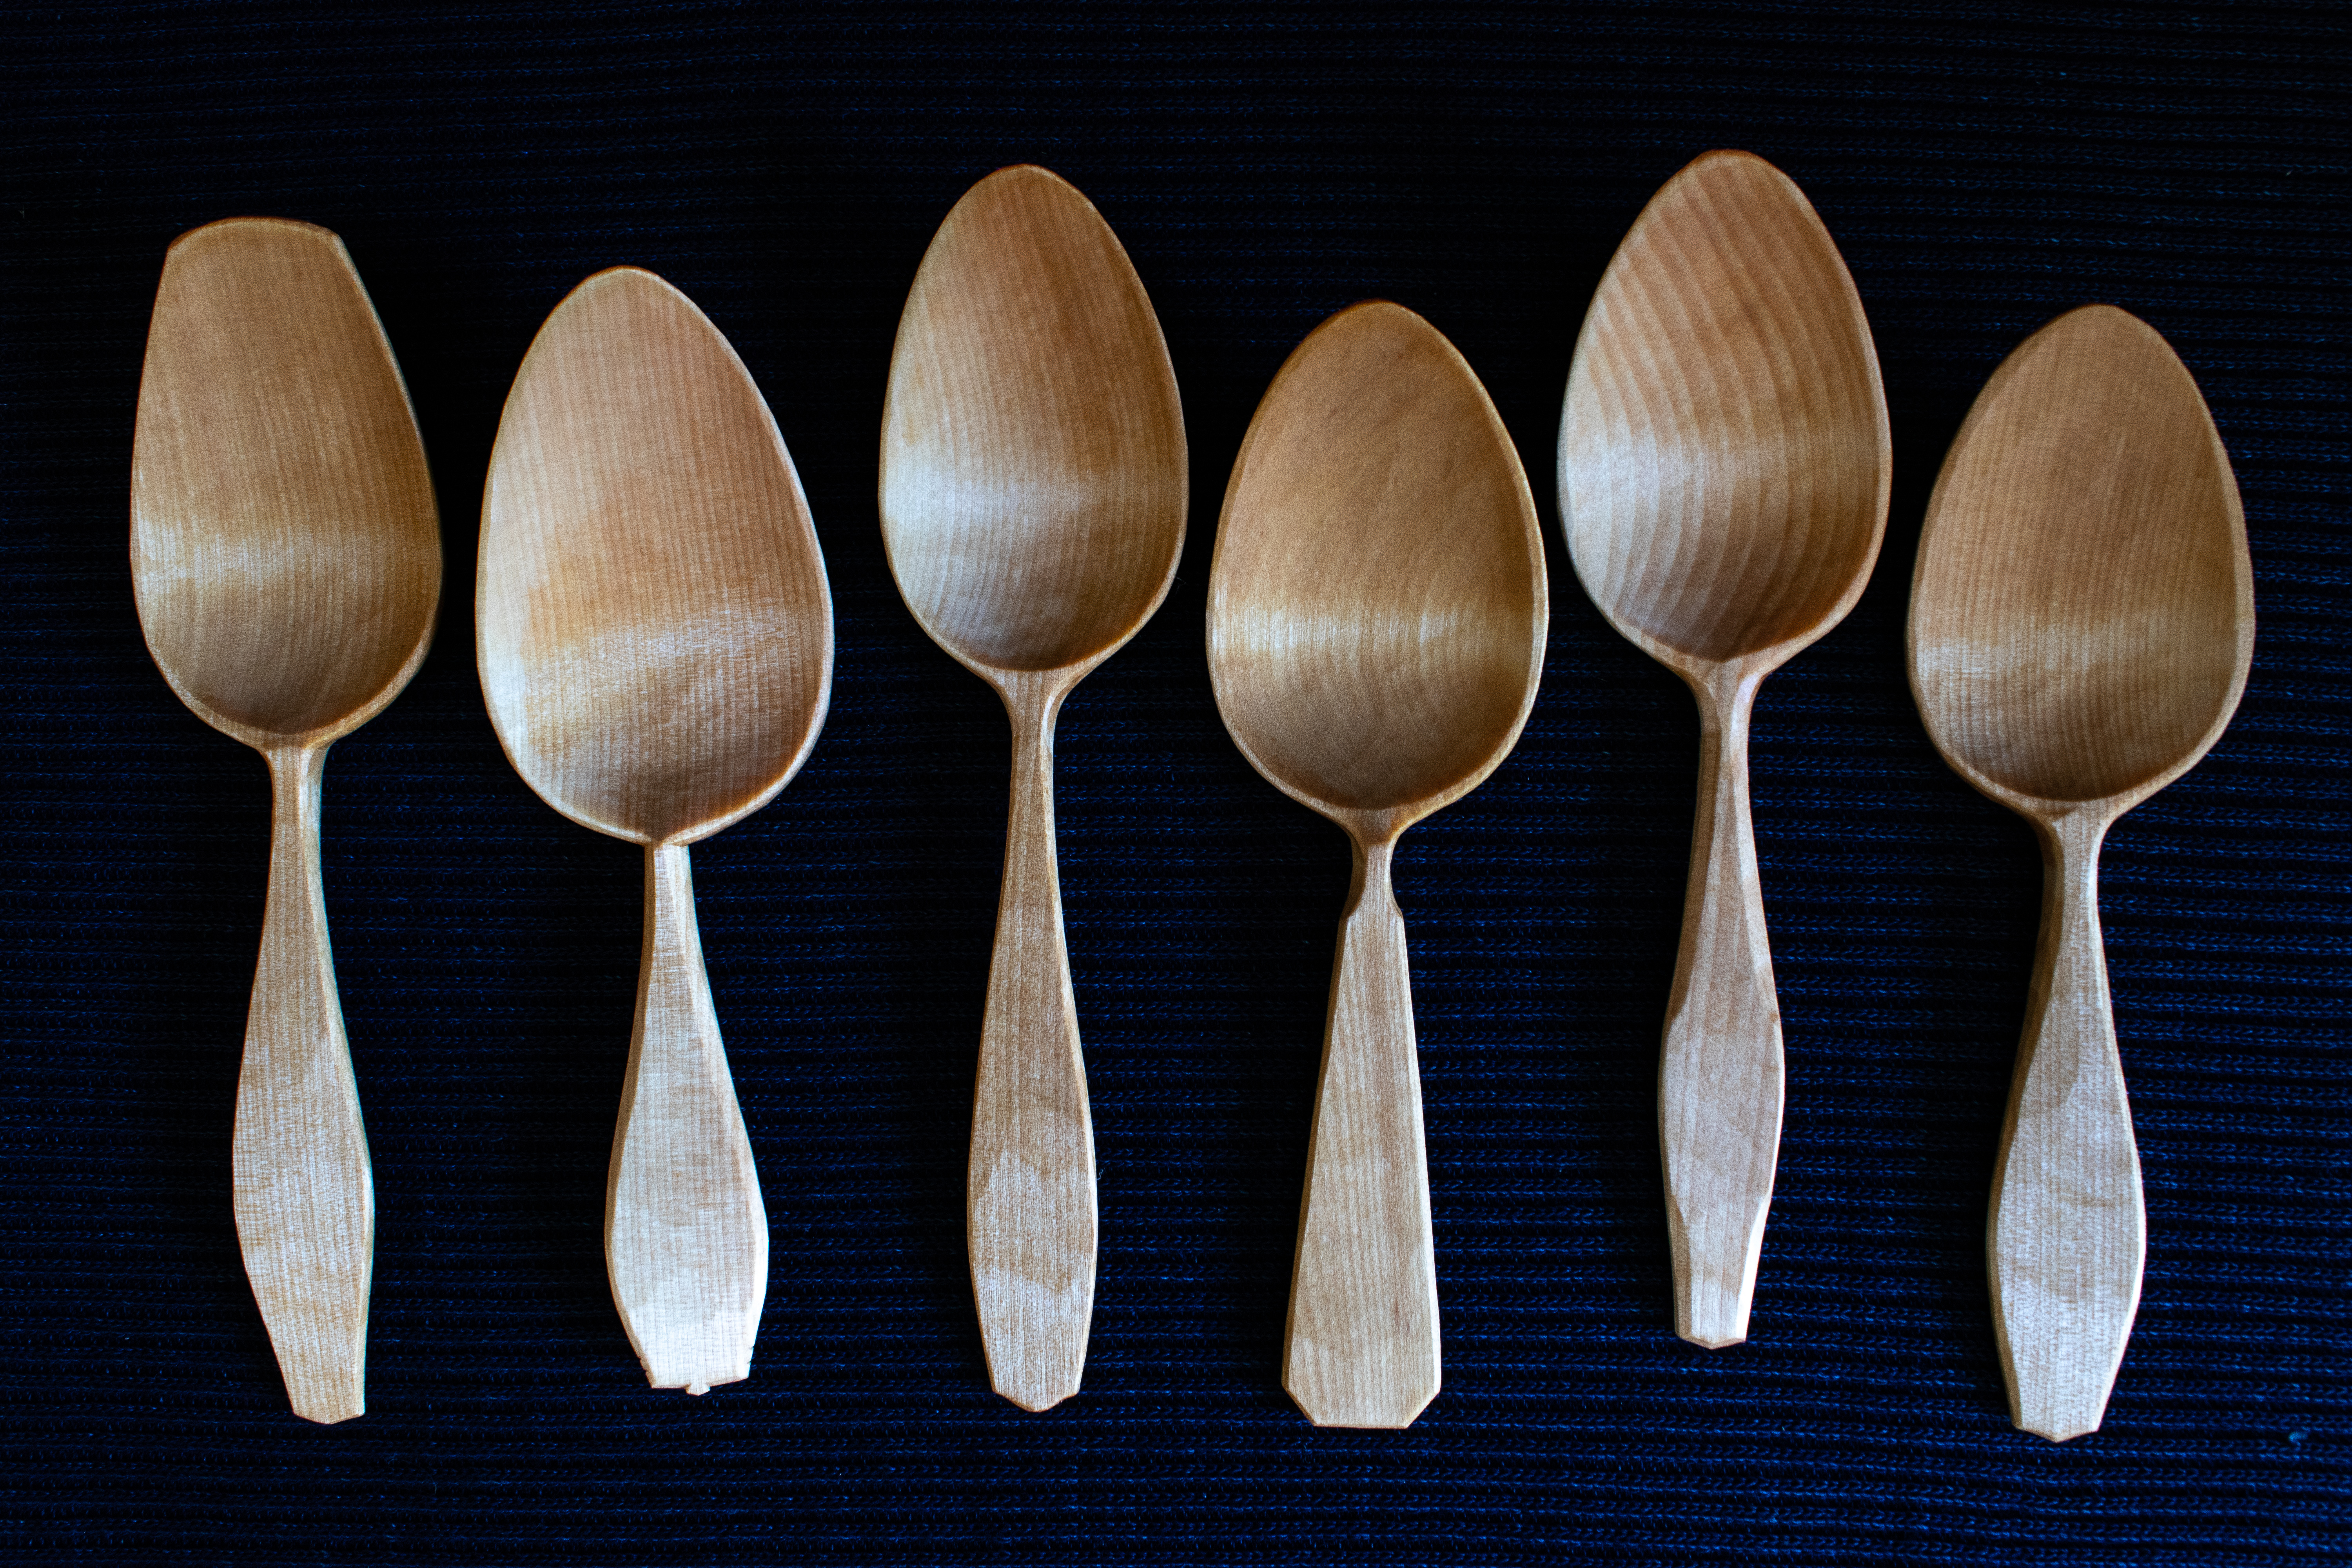 Spoon design possibilities are endless.